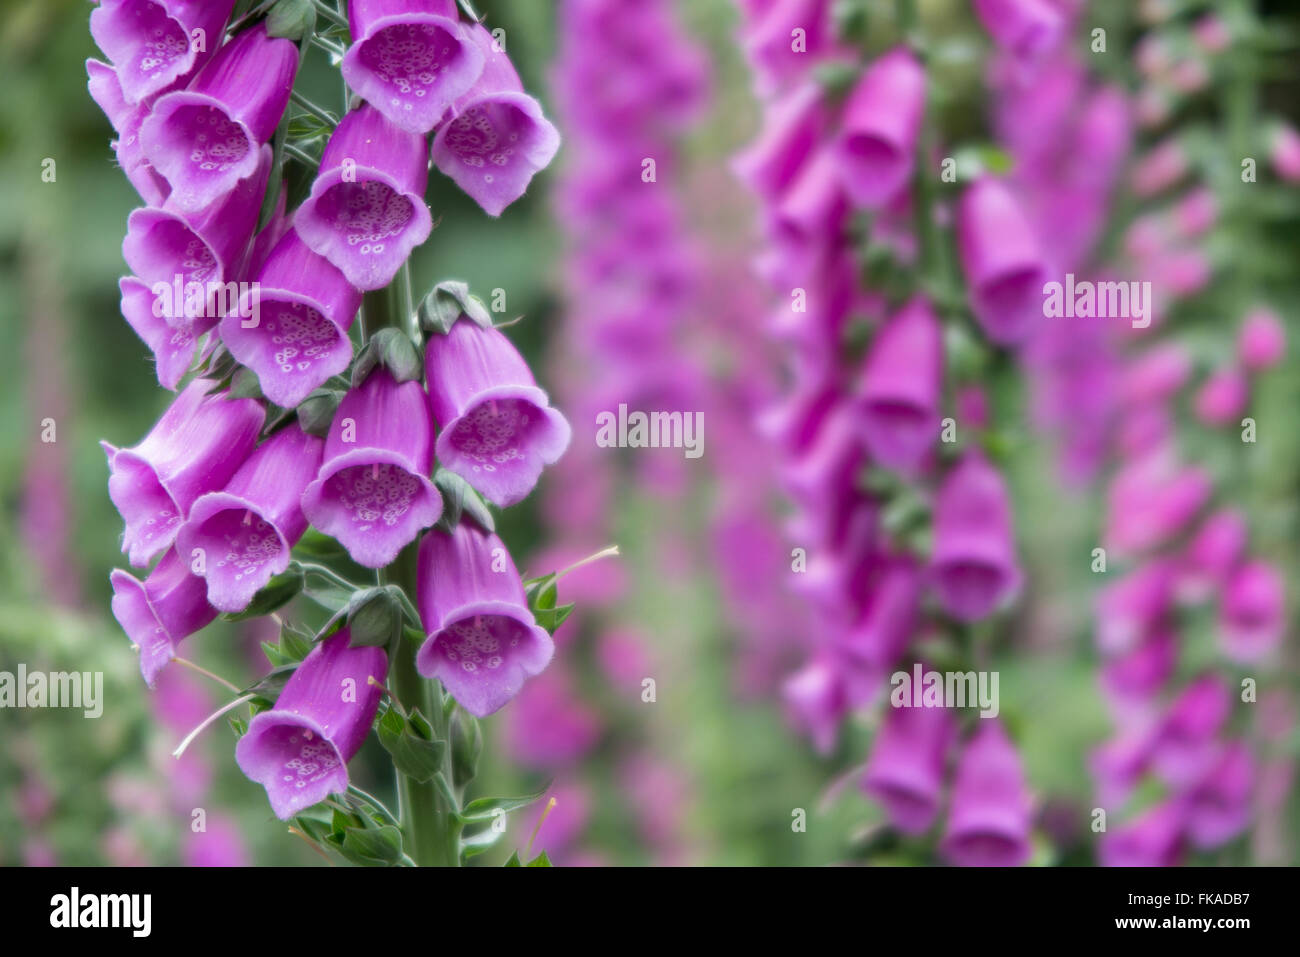 foxgloves in the woods nr Minterne Magna, Dorset, England, UK - Stock Image